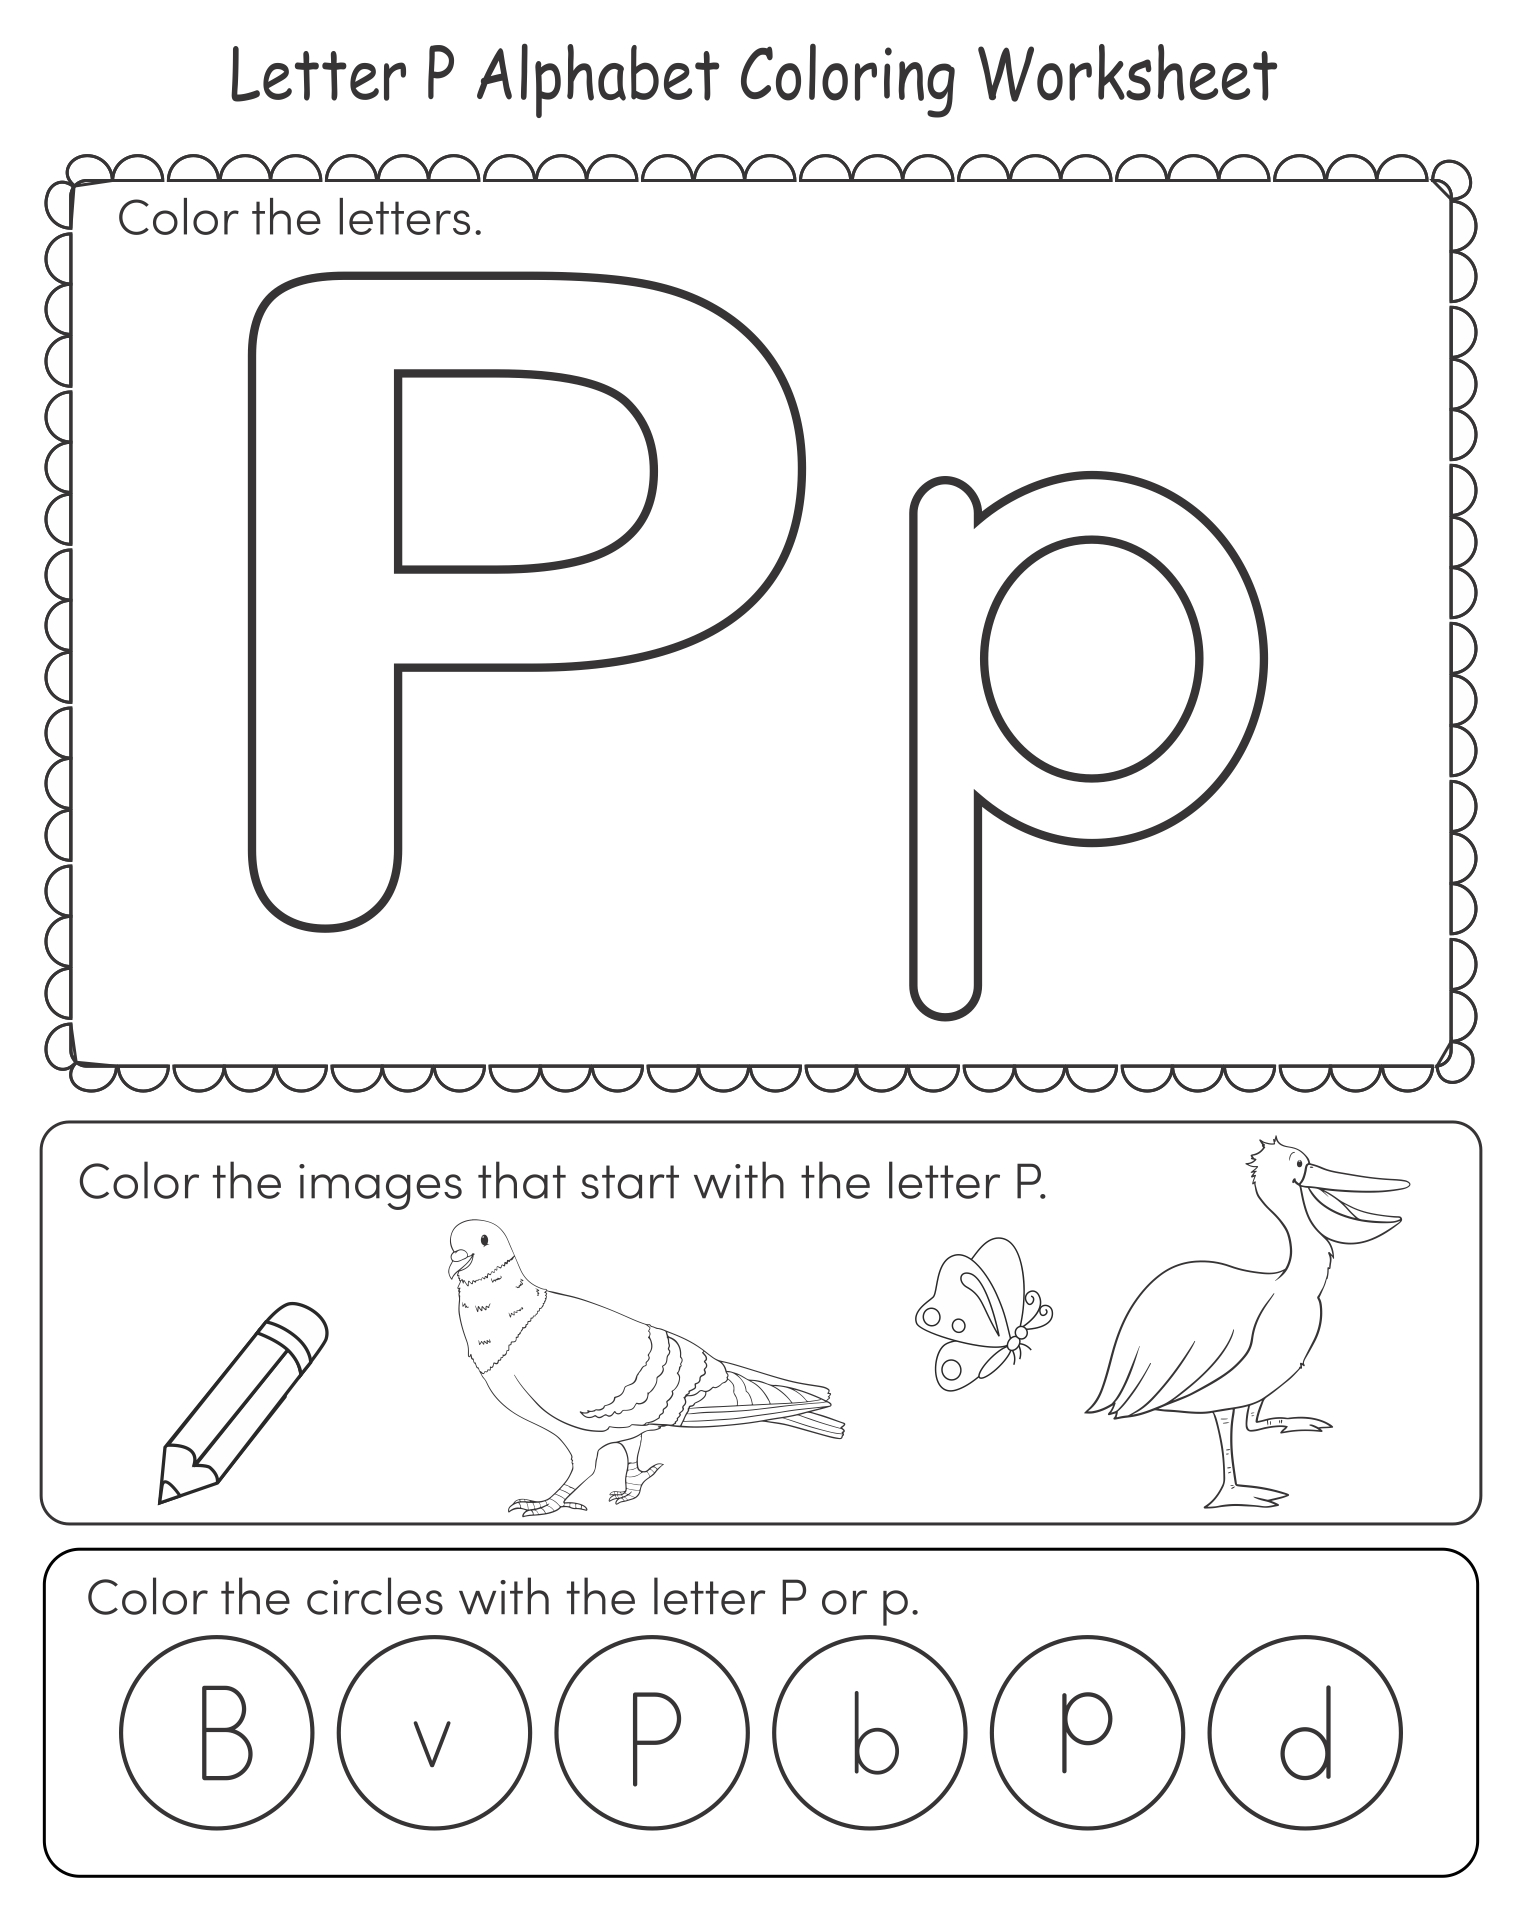 Printables Printable Abc Worksheets For Pre-k pre k worksheets printable alphabet templates and free abc for alphabet